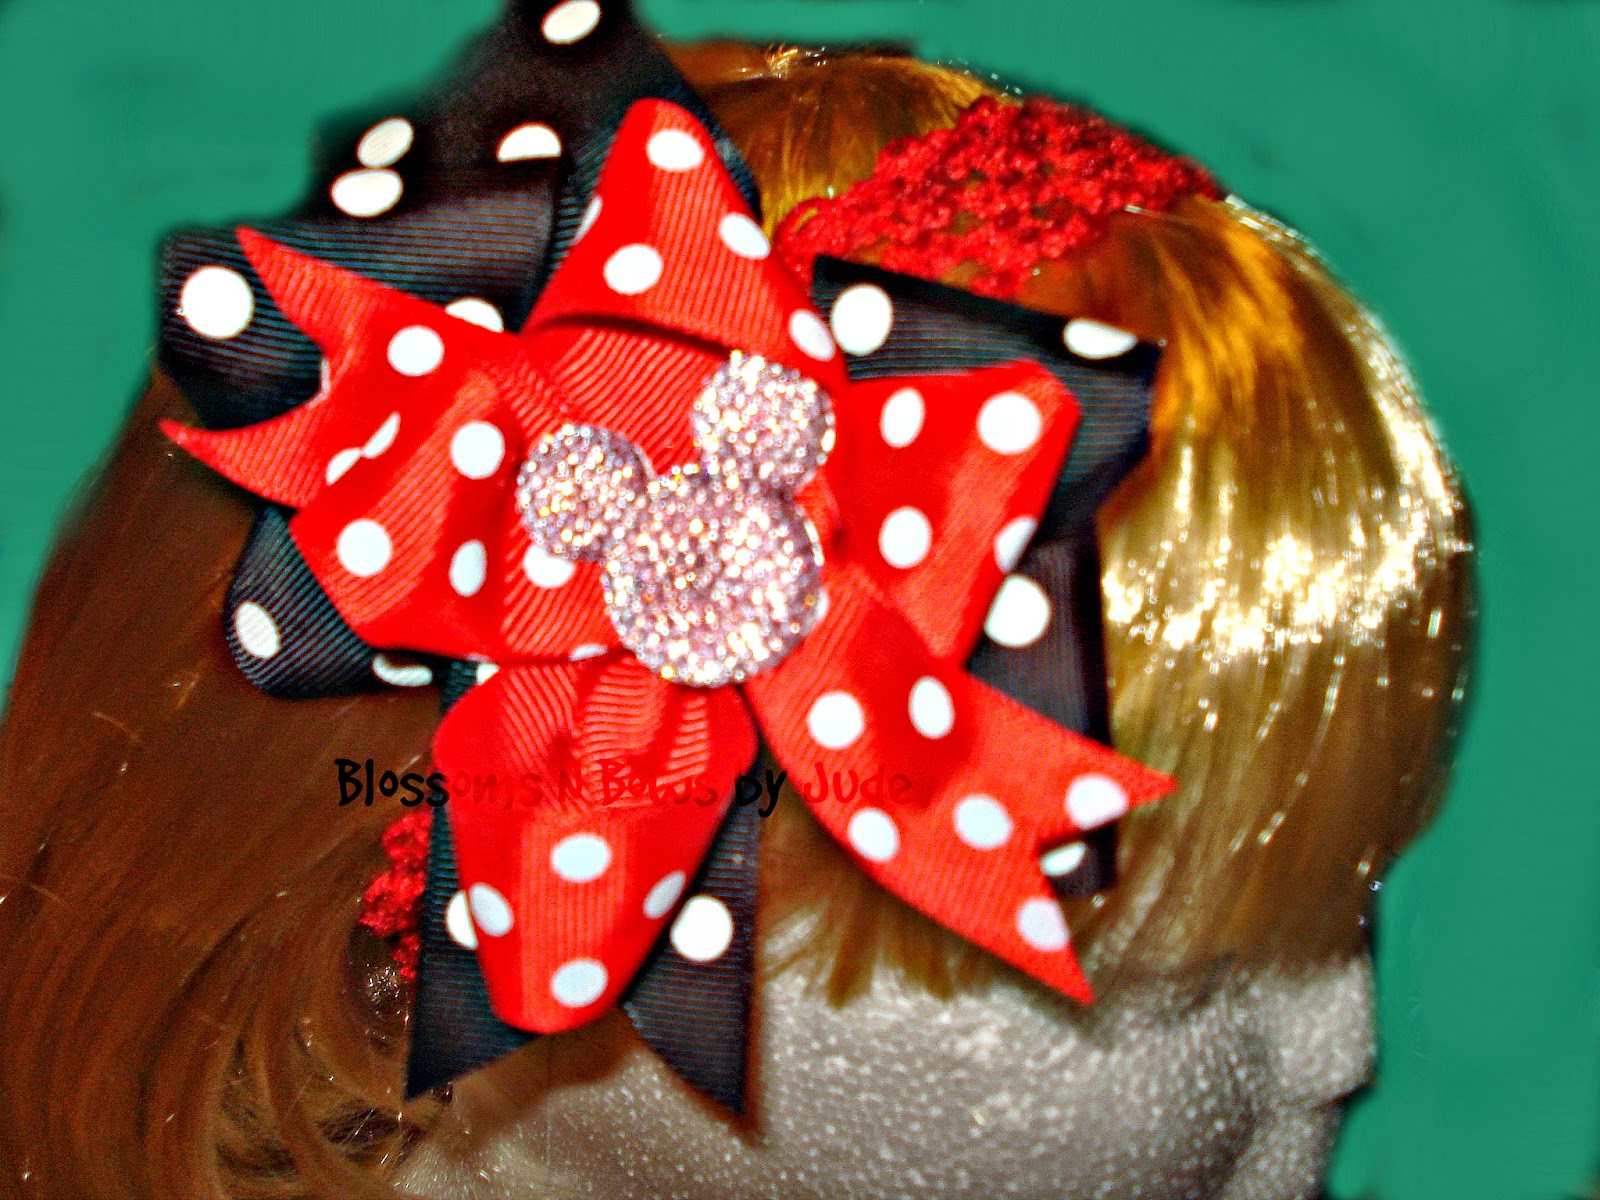 http://www.ebay.com/itm/Mickey-Inspired-Hair-Bow-U-Choose-headband-color-alligator-clip-FREE-SHIPPIN-/151274748994?pt=US_Girls_Accessories&hash=item2338ad7c42